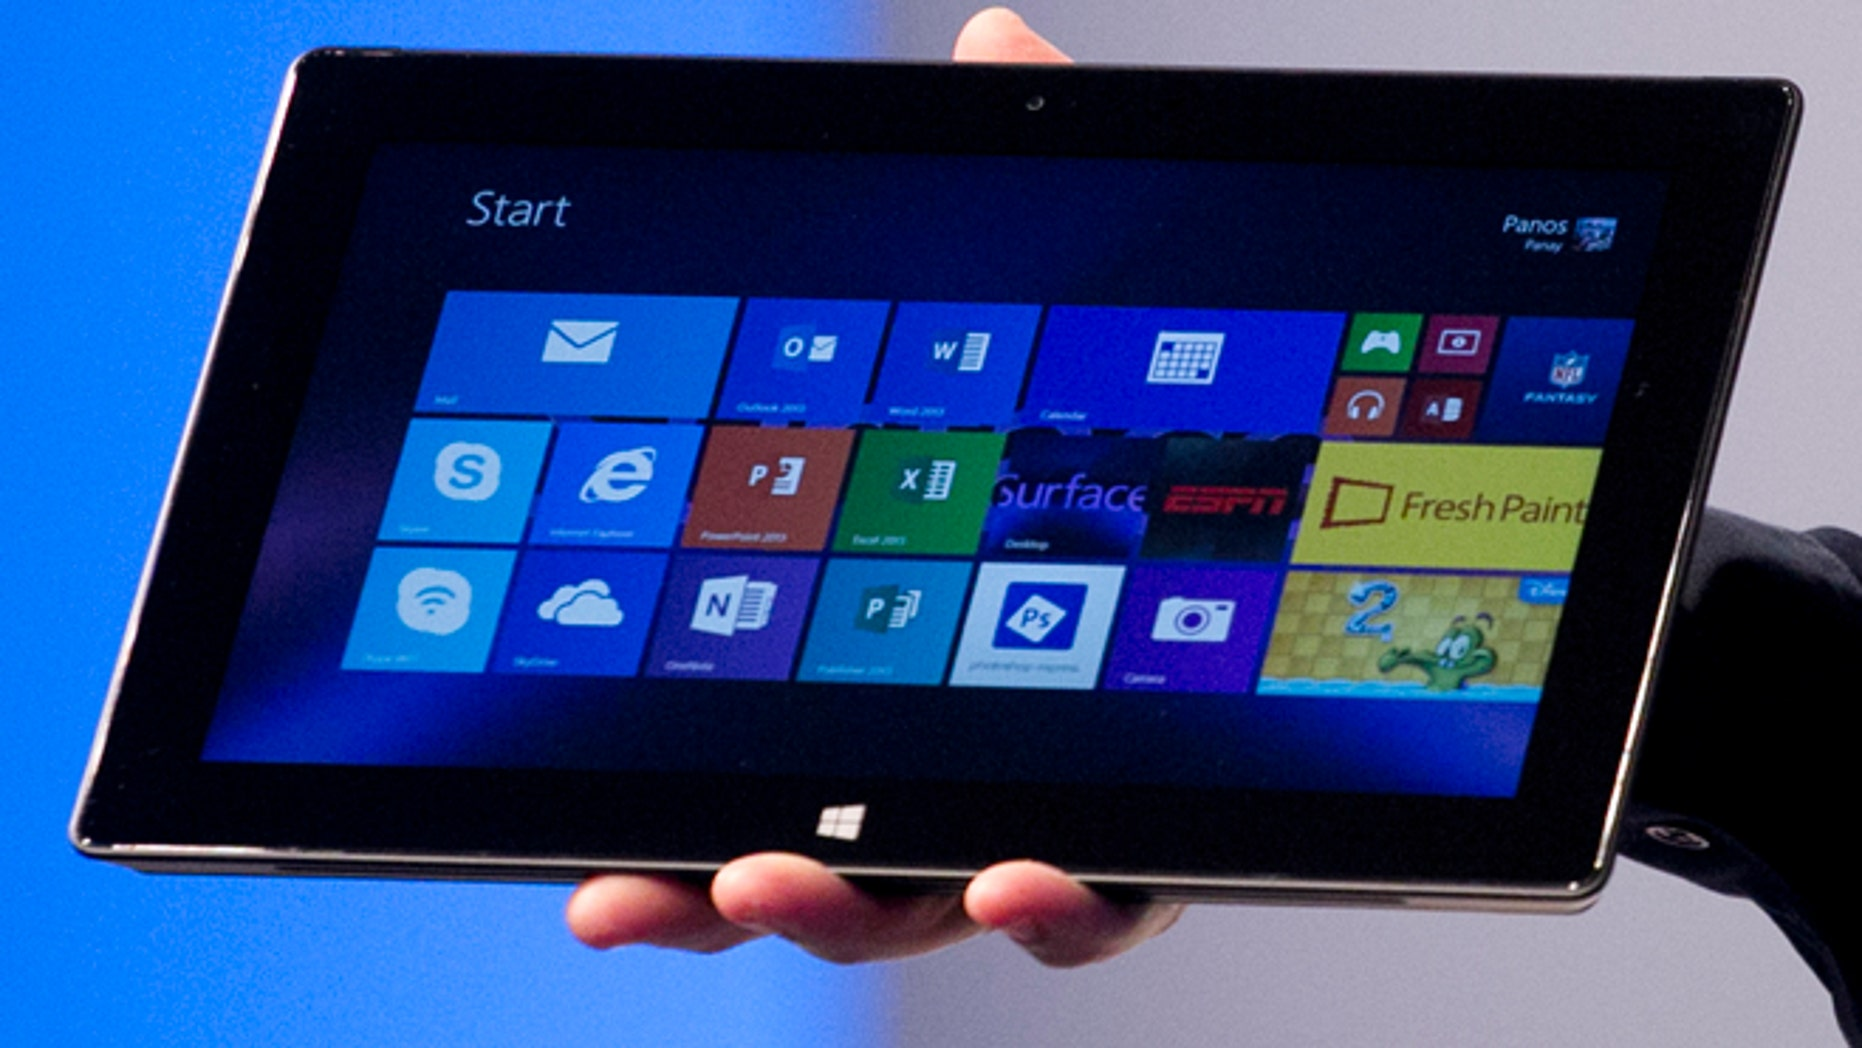 Delta Air Lines plans to buy 11,000 Microsoft Surface 2 tablets for its pilots to replace the heavy bundles of books and maps they haul around now.